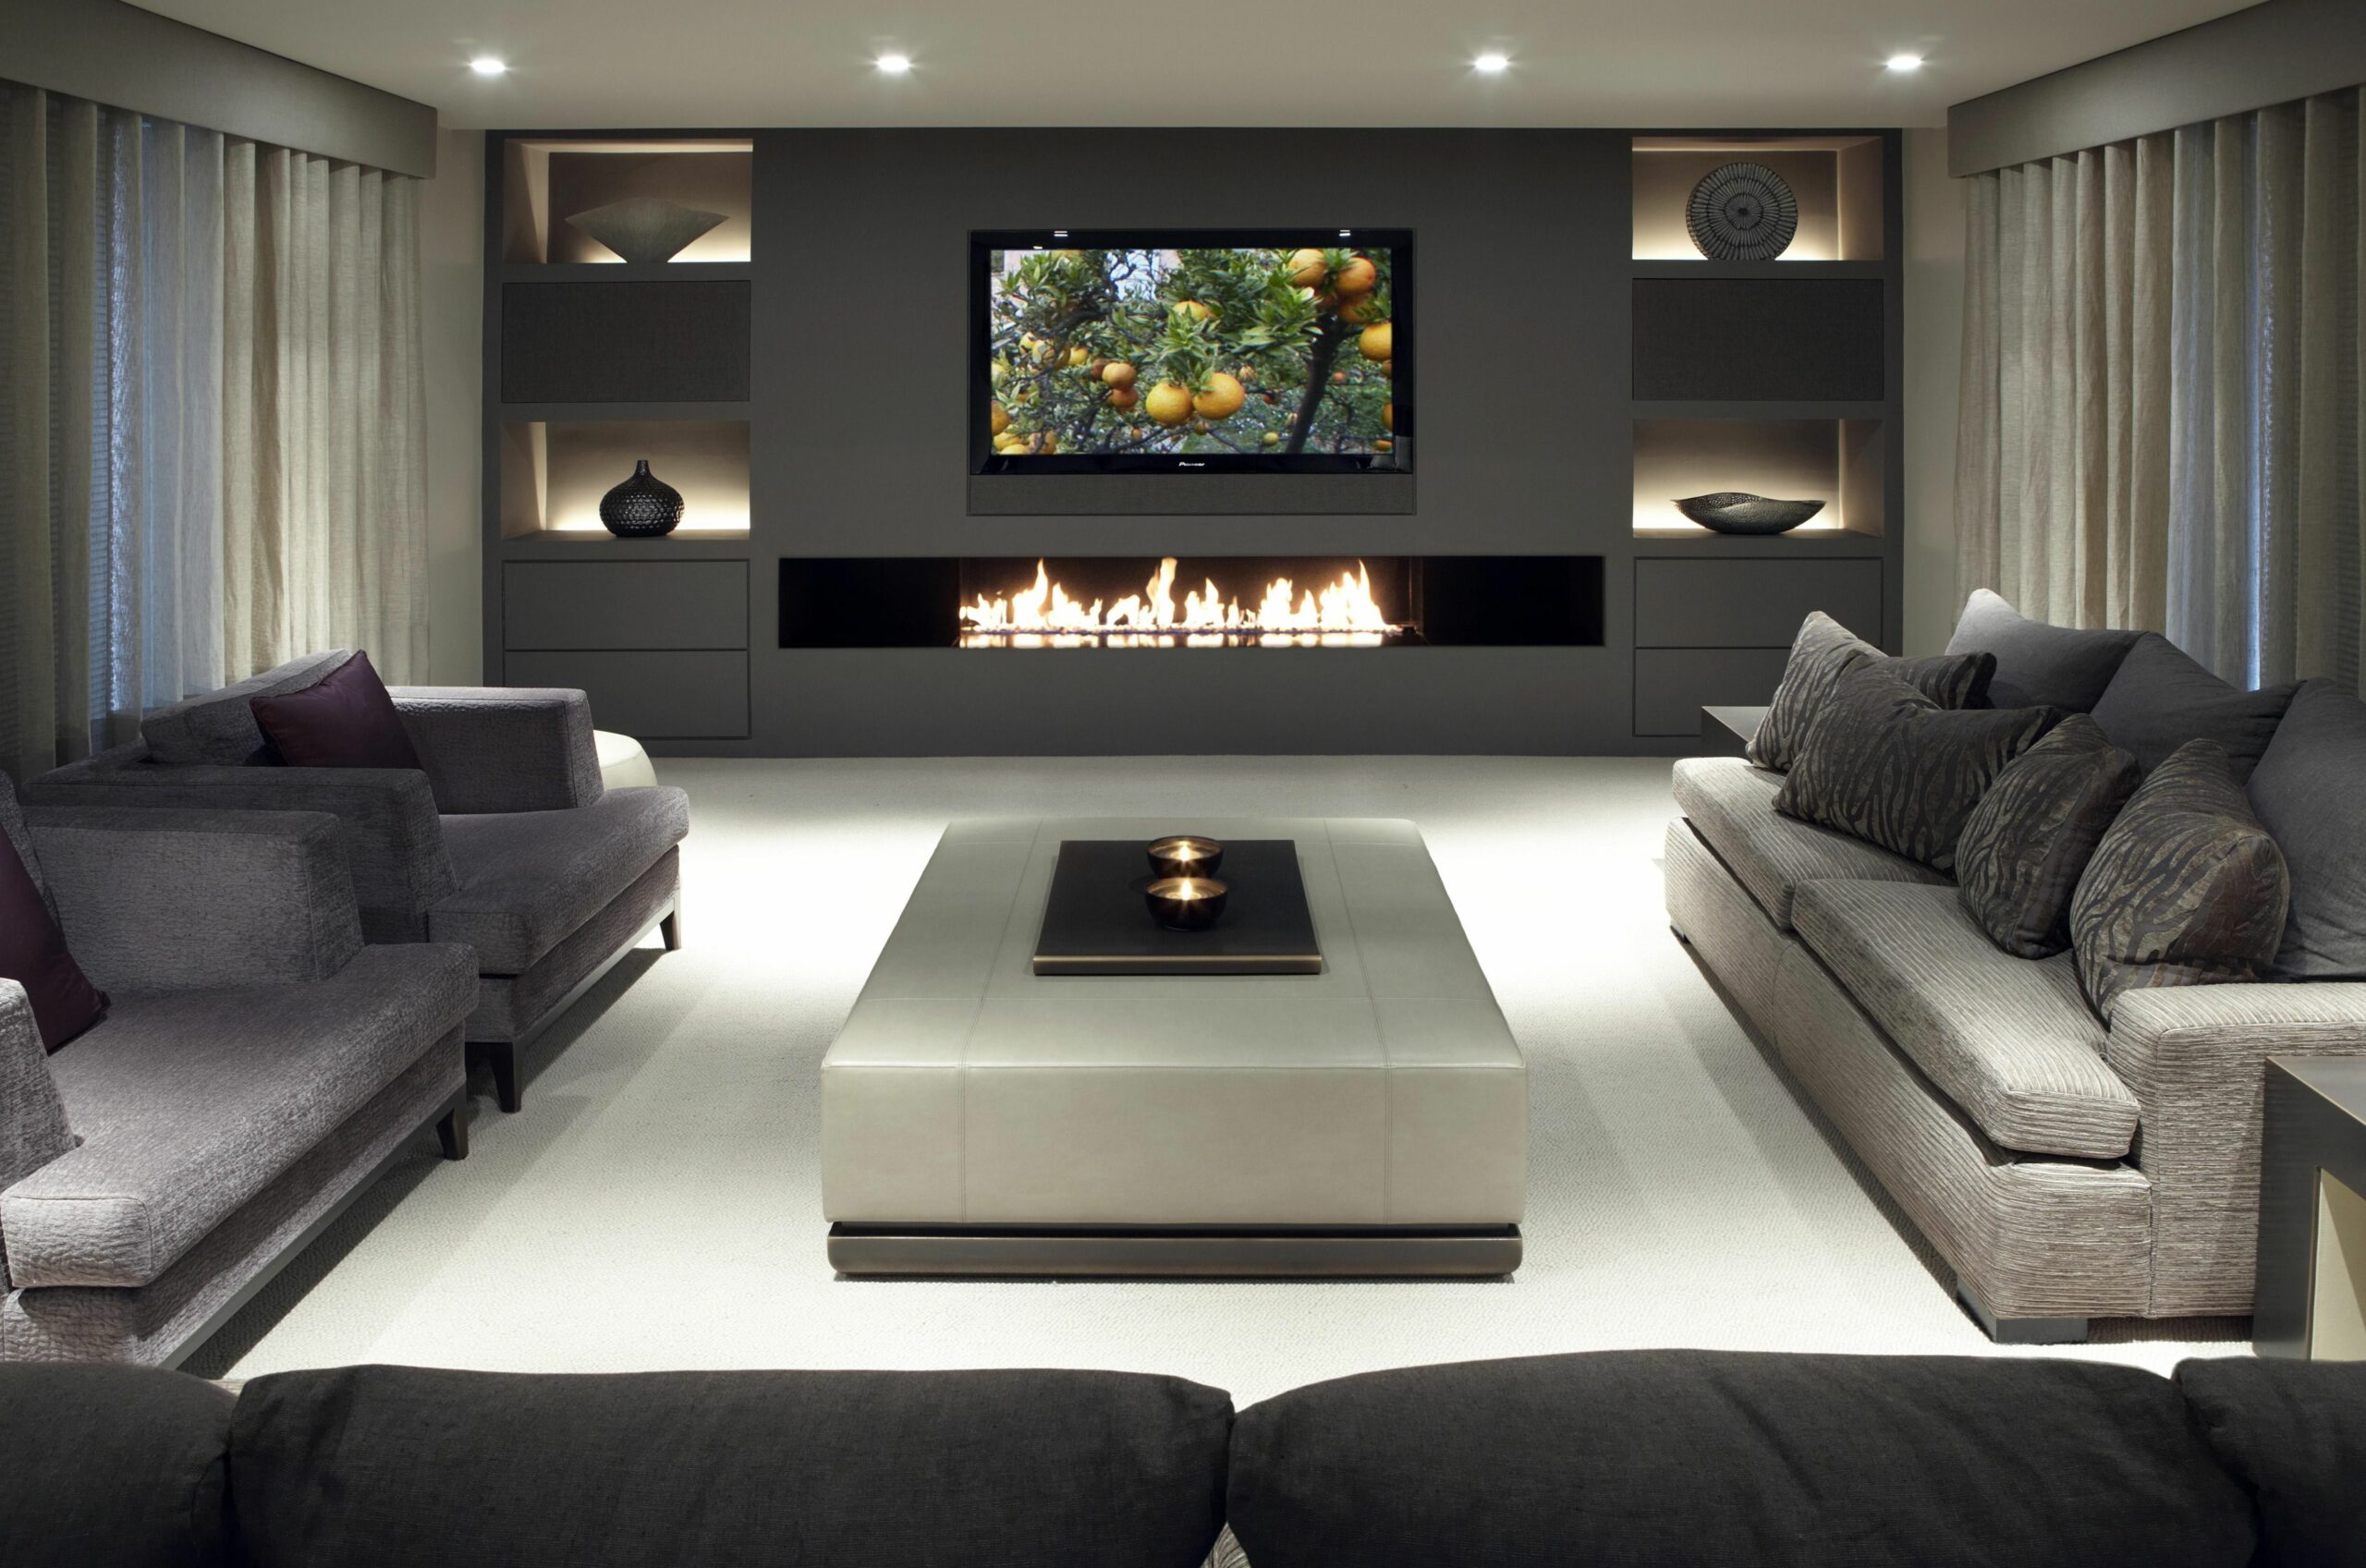 Top Living Room Design Ideas [The Best Tips for Your Next Update ...